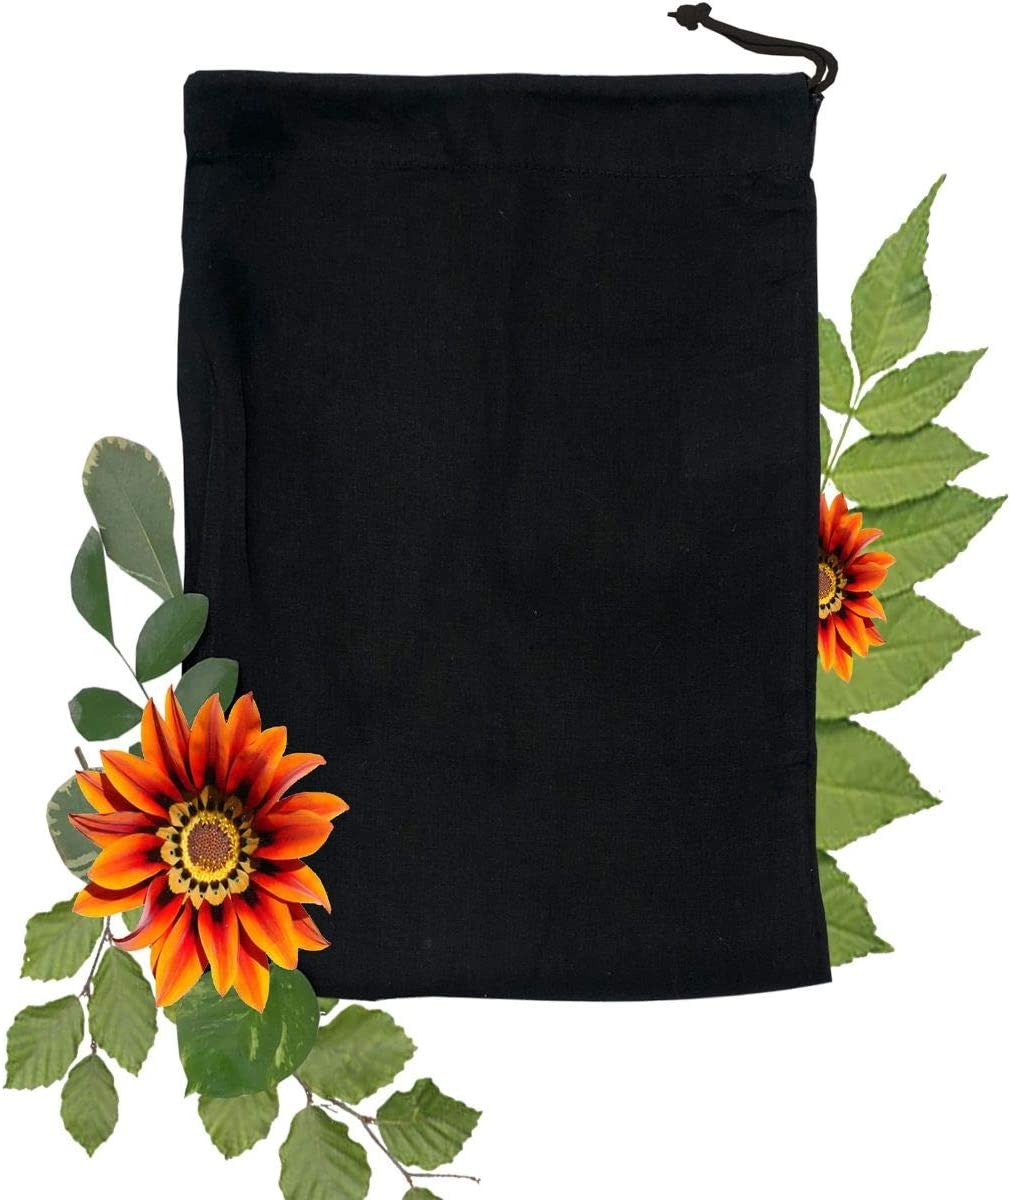 10x12 inches Black 新作多数 Cotton Bags Prem Reusable 新作多数 and Biodegradable